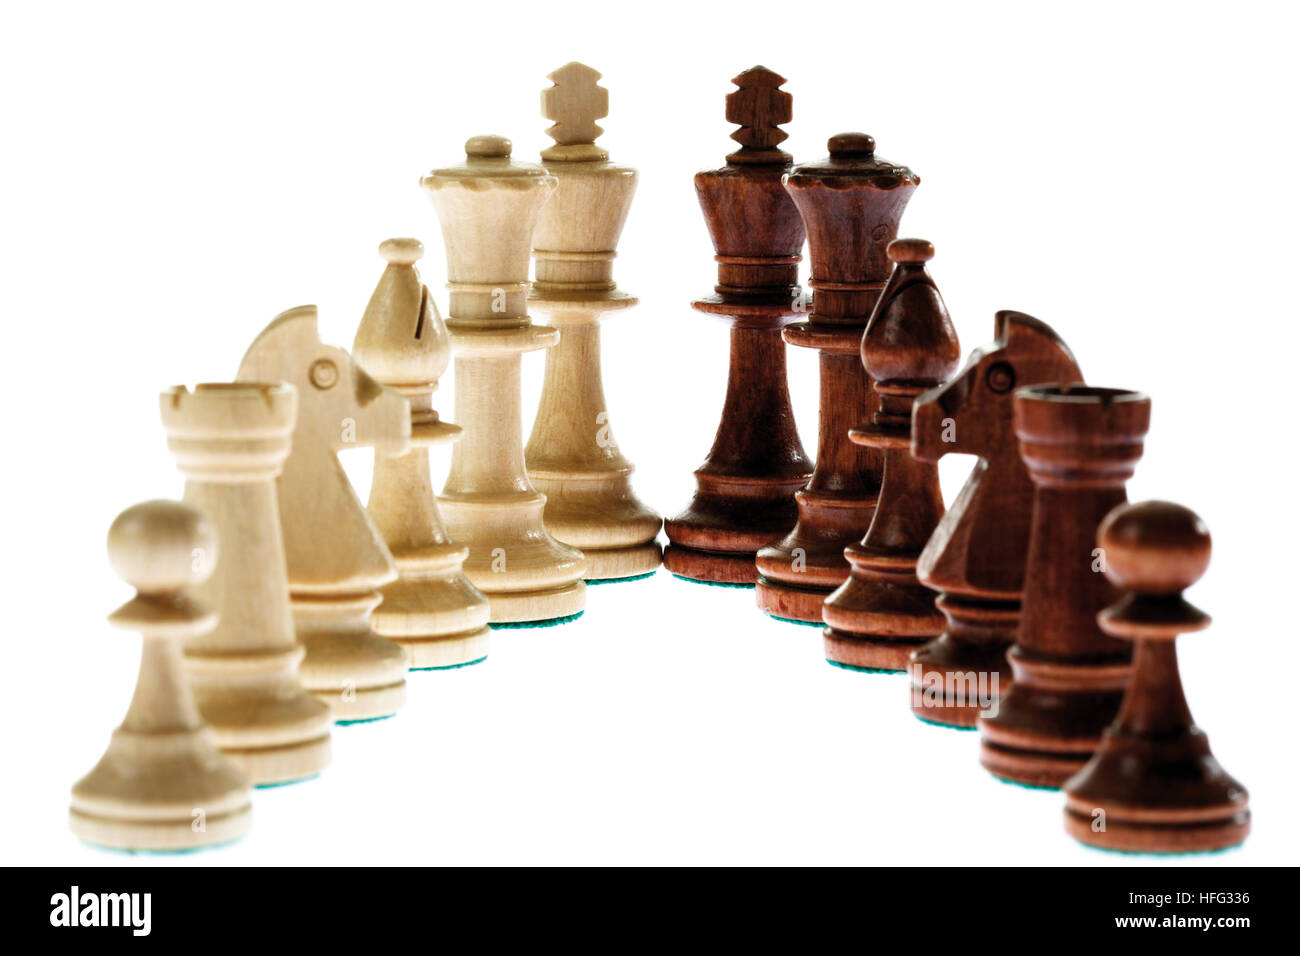 Bishop Chess Piece Stock Photos amp Pictures Royalty Free